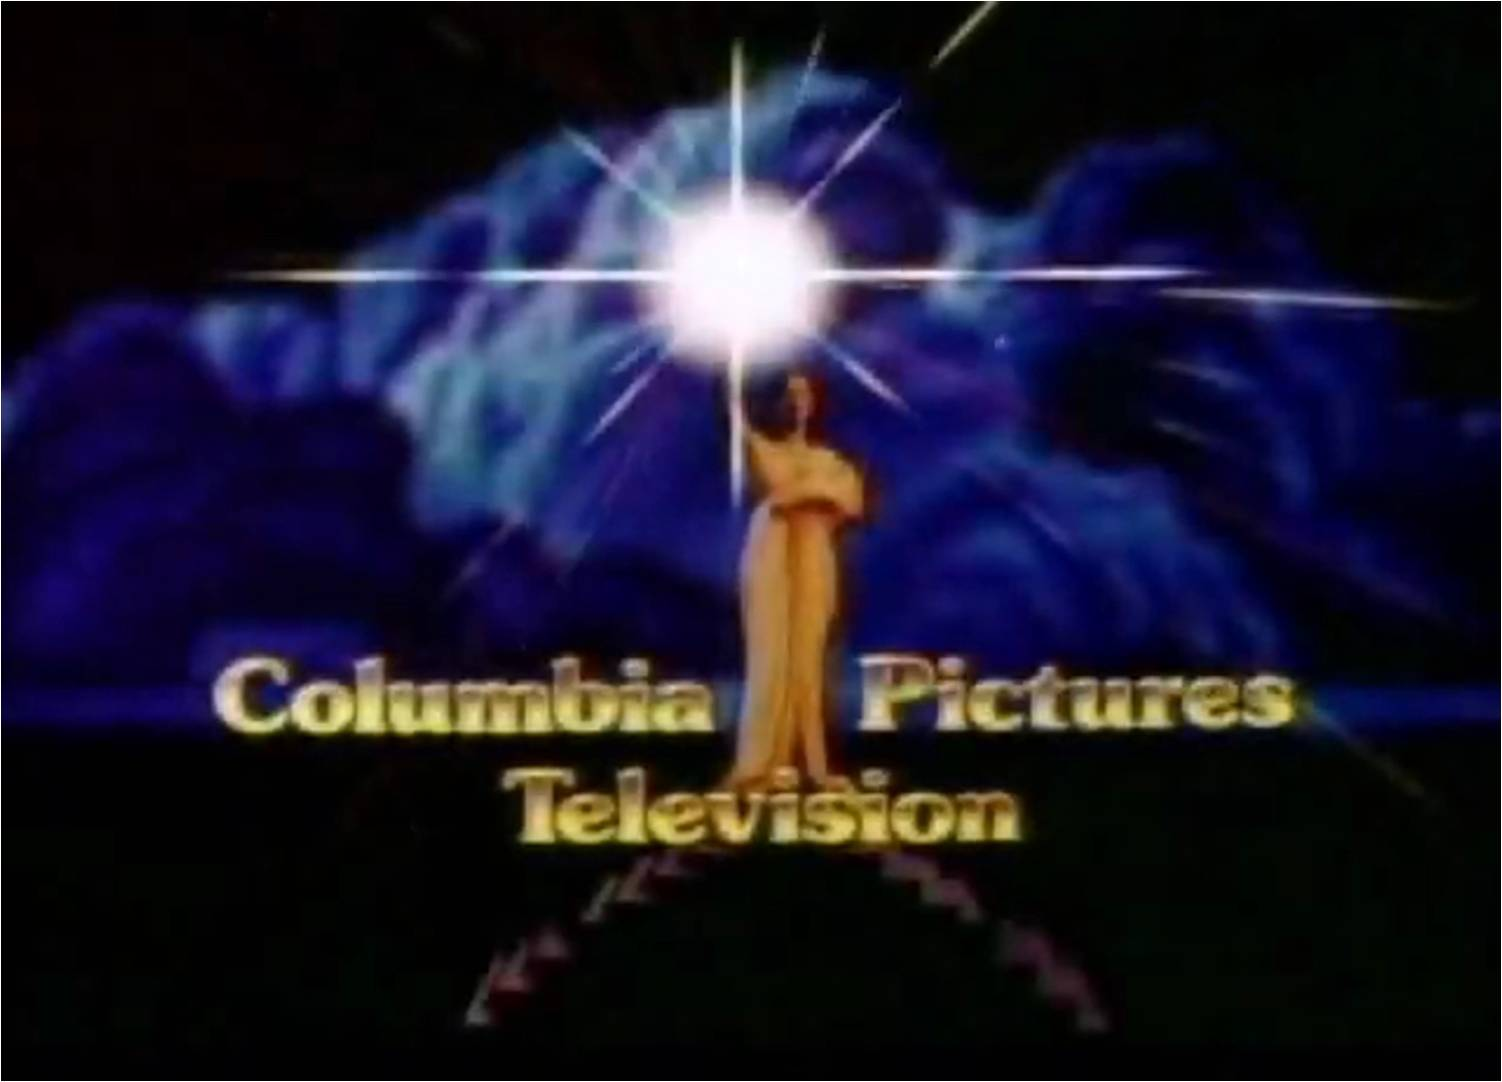 Columbia Pictures Television (1991, Blue-Gold)